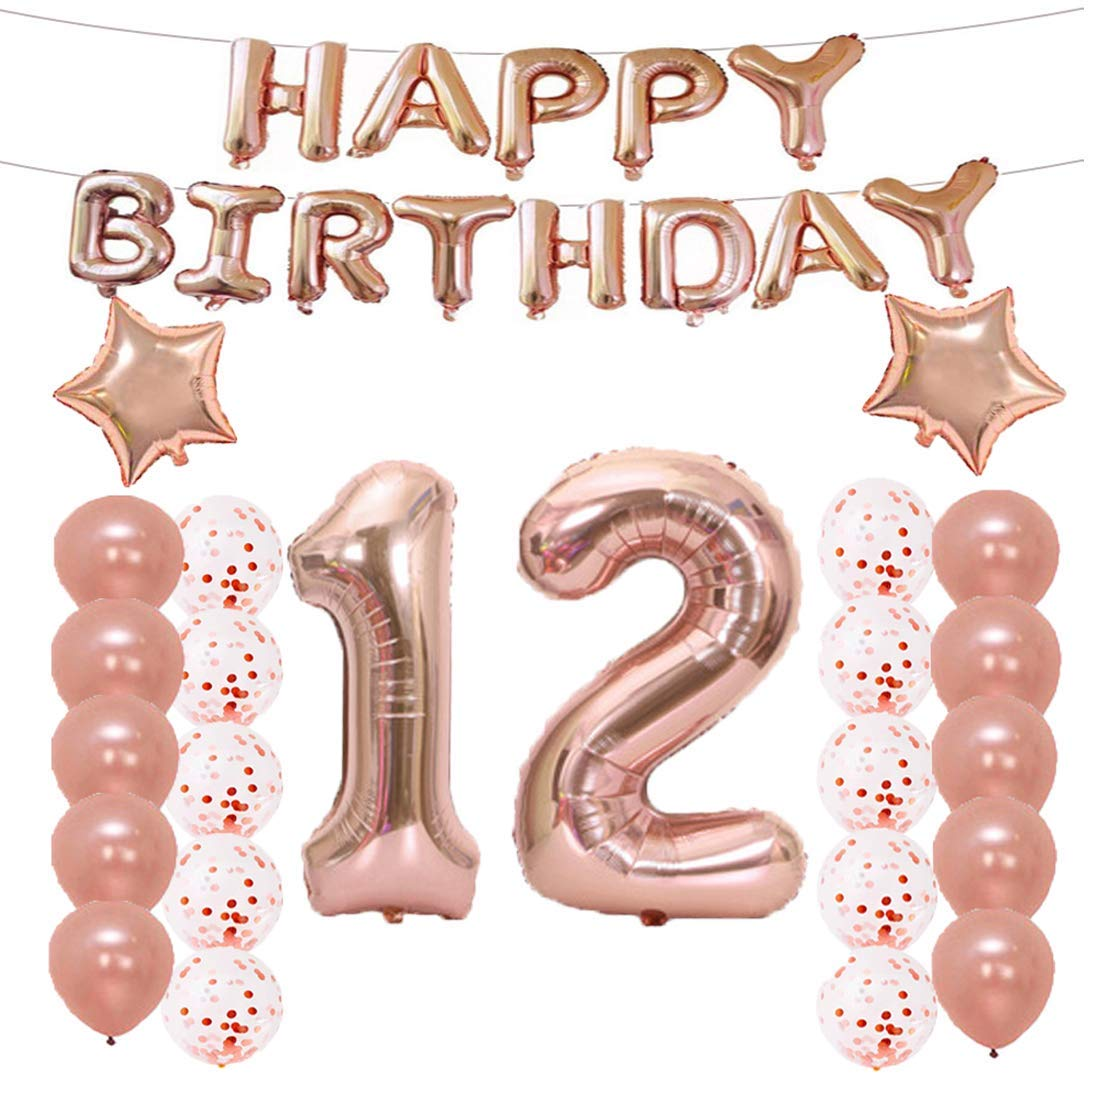 12th Birthday Decorations Party Supplies,12th Birthday Balloons Rose Gold,Number 12 Mylar Balloon,Latex Balloon Decoration,Great Sweet 12th Birthday Gifts for Girls,Photo Props